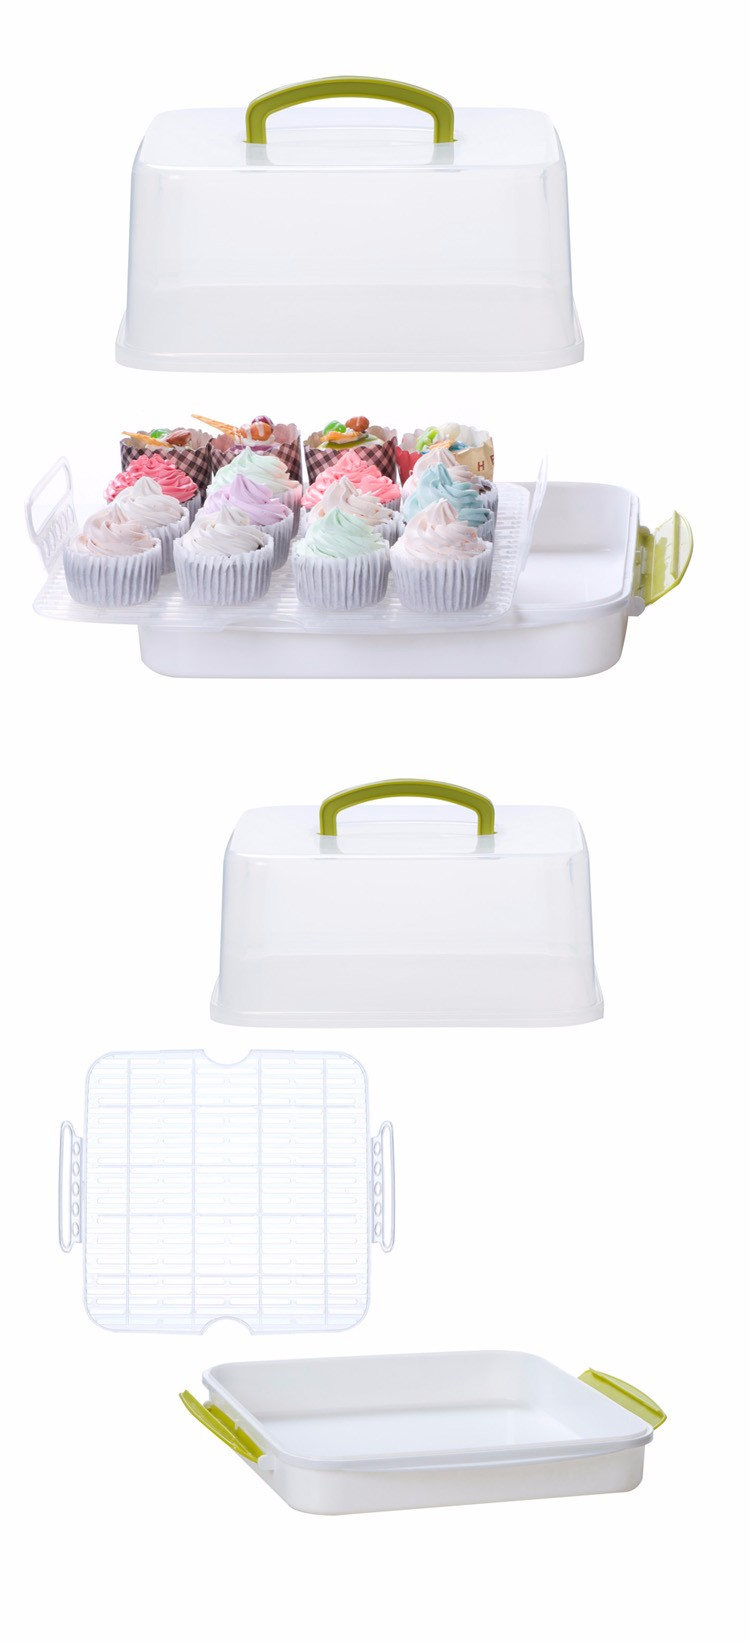 2017 Heng long plastic cake carrier transparent cake box cupcake carrier